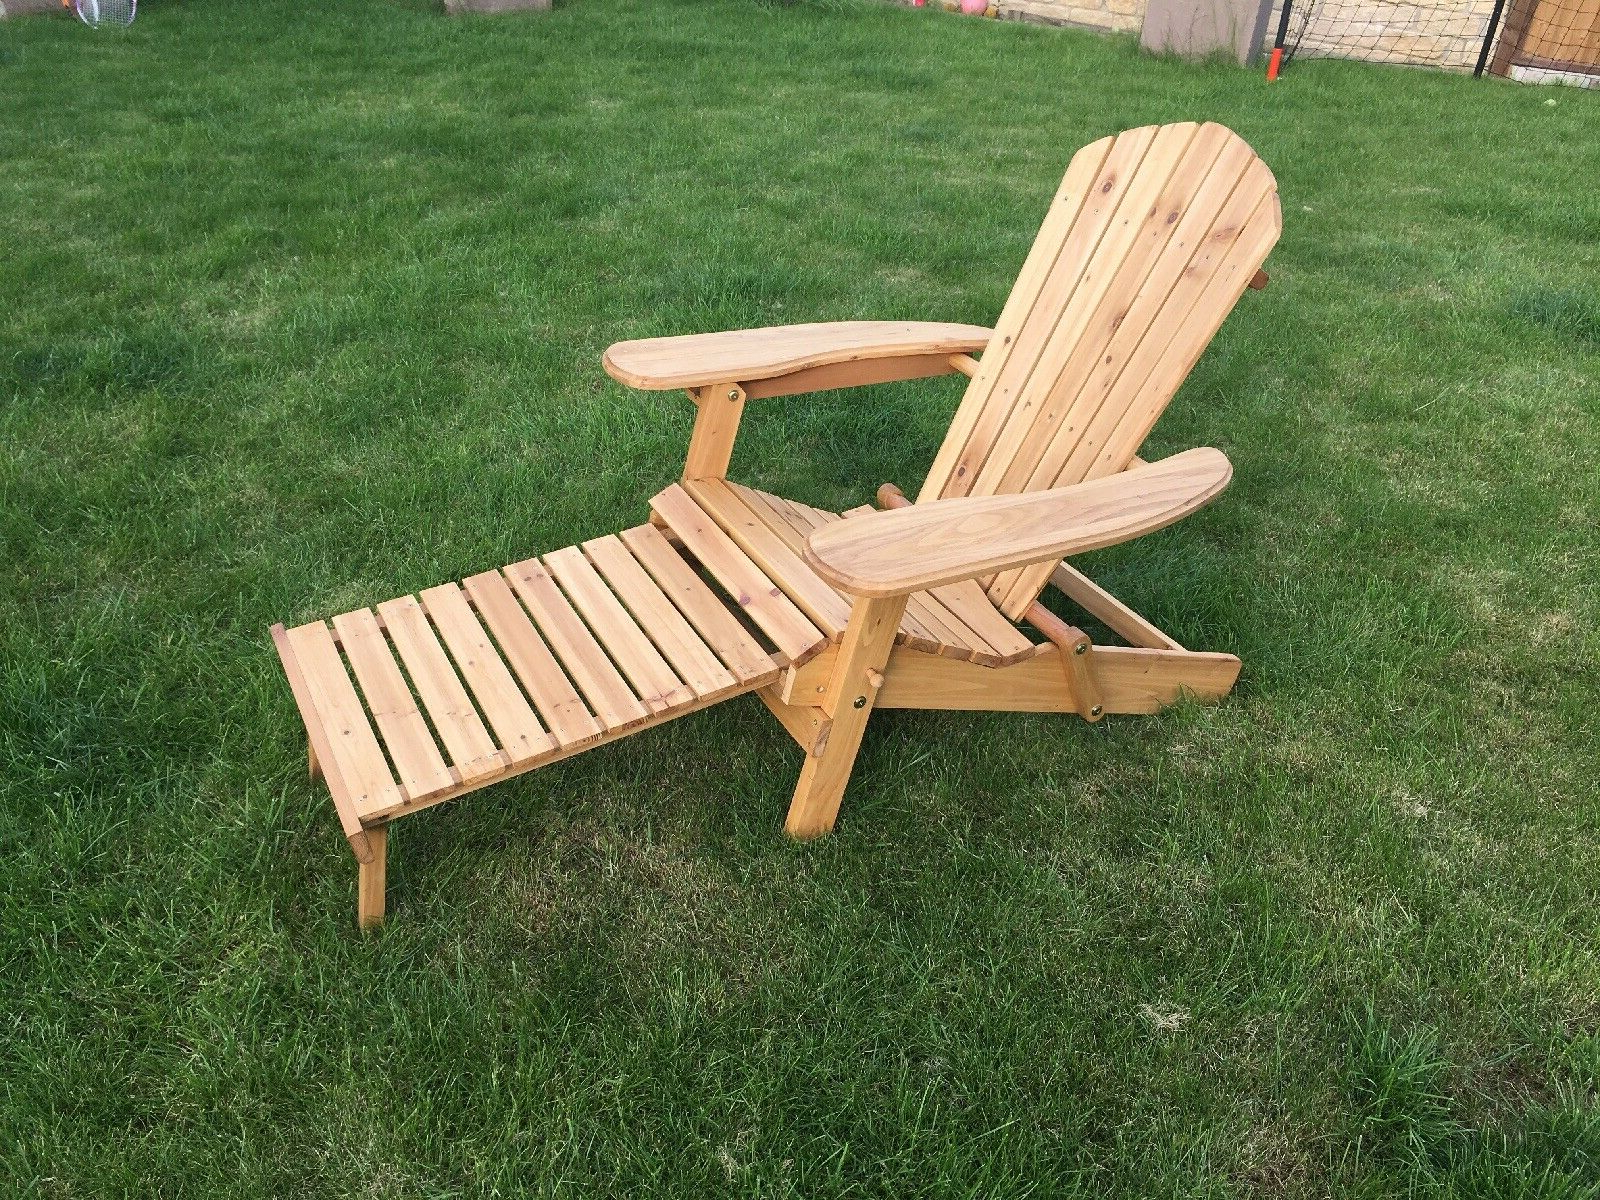 Adirondack Pine Chairs Reduced From £120 With Ottoman/footstool Garden Or  Home Within Famous Adirondack Chairs With Footrest (View 9 of 25)